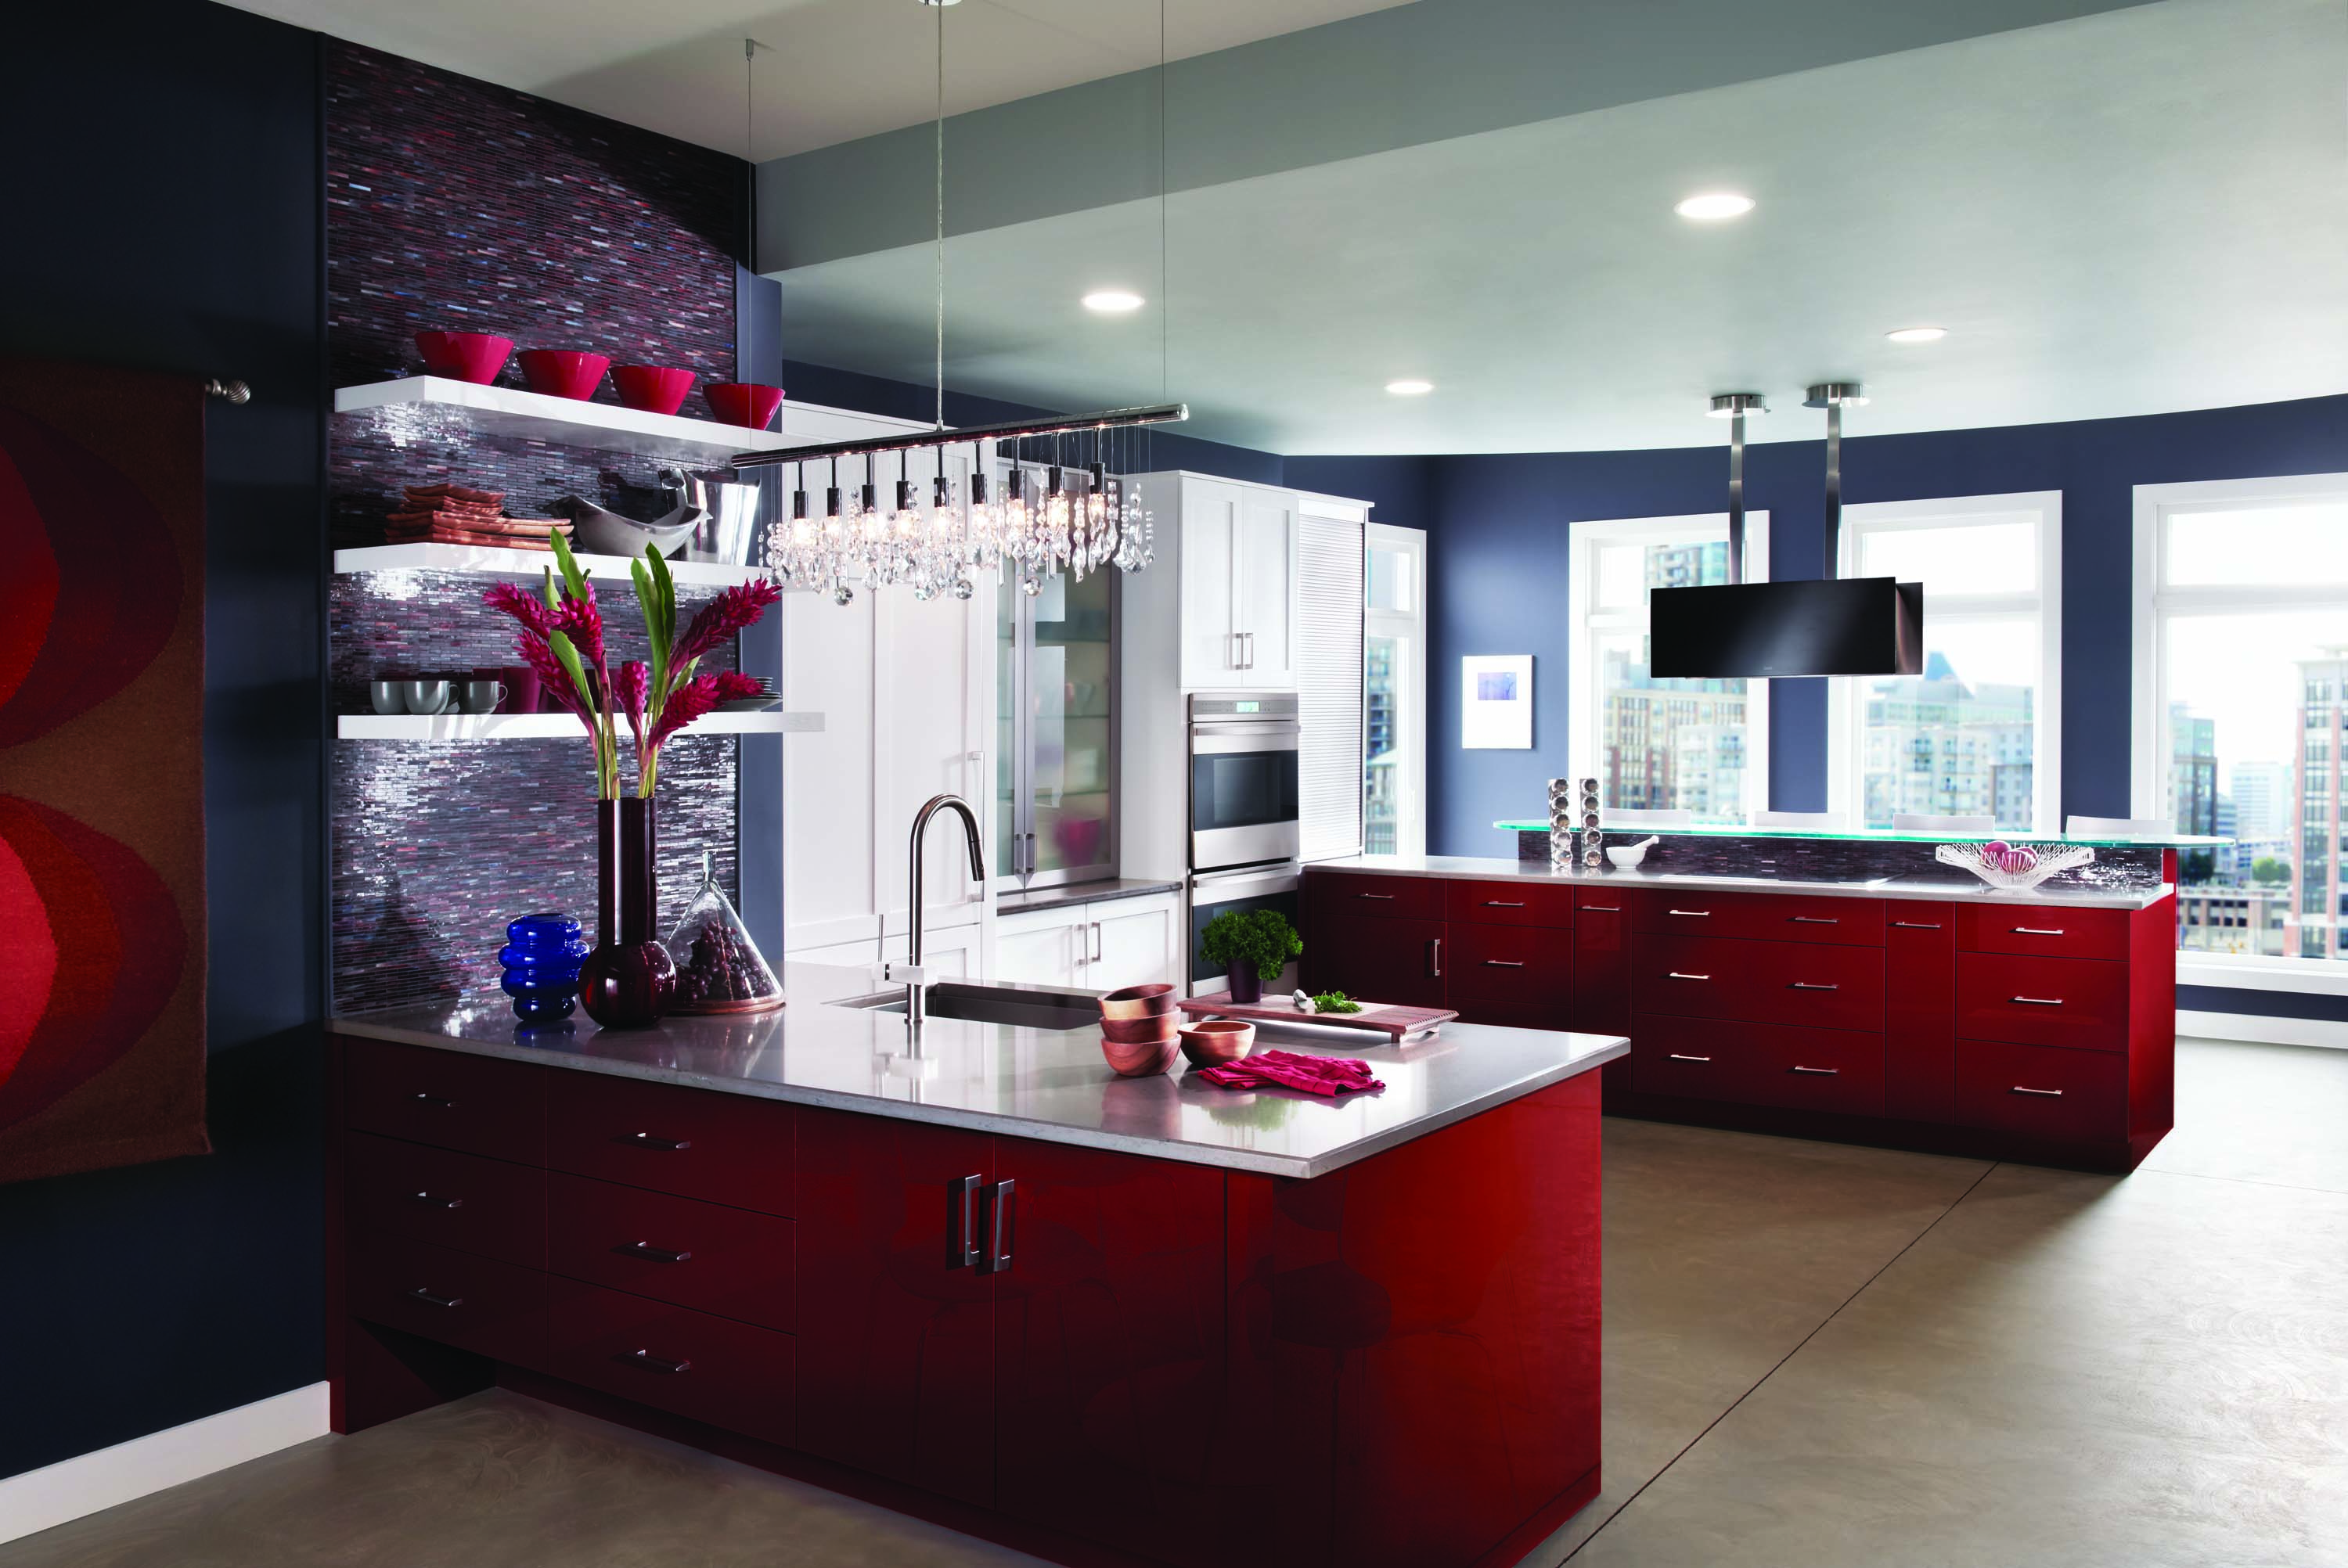 Hassle free kitchen design remodeling in cleveland ohio for 1 kitchen cleveland ohio